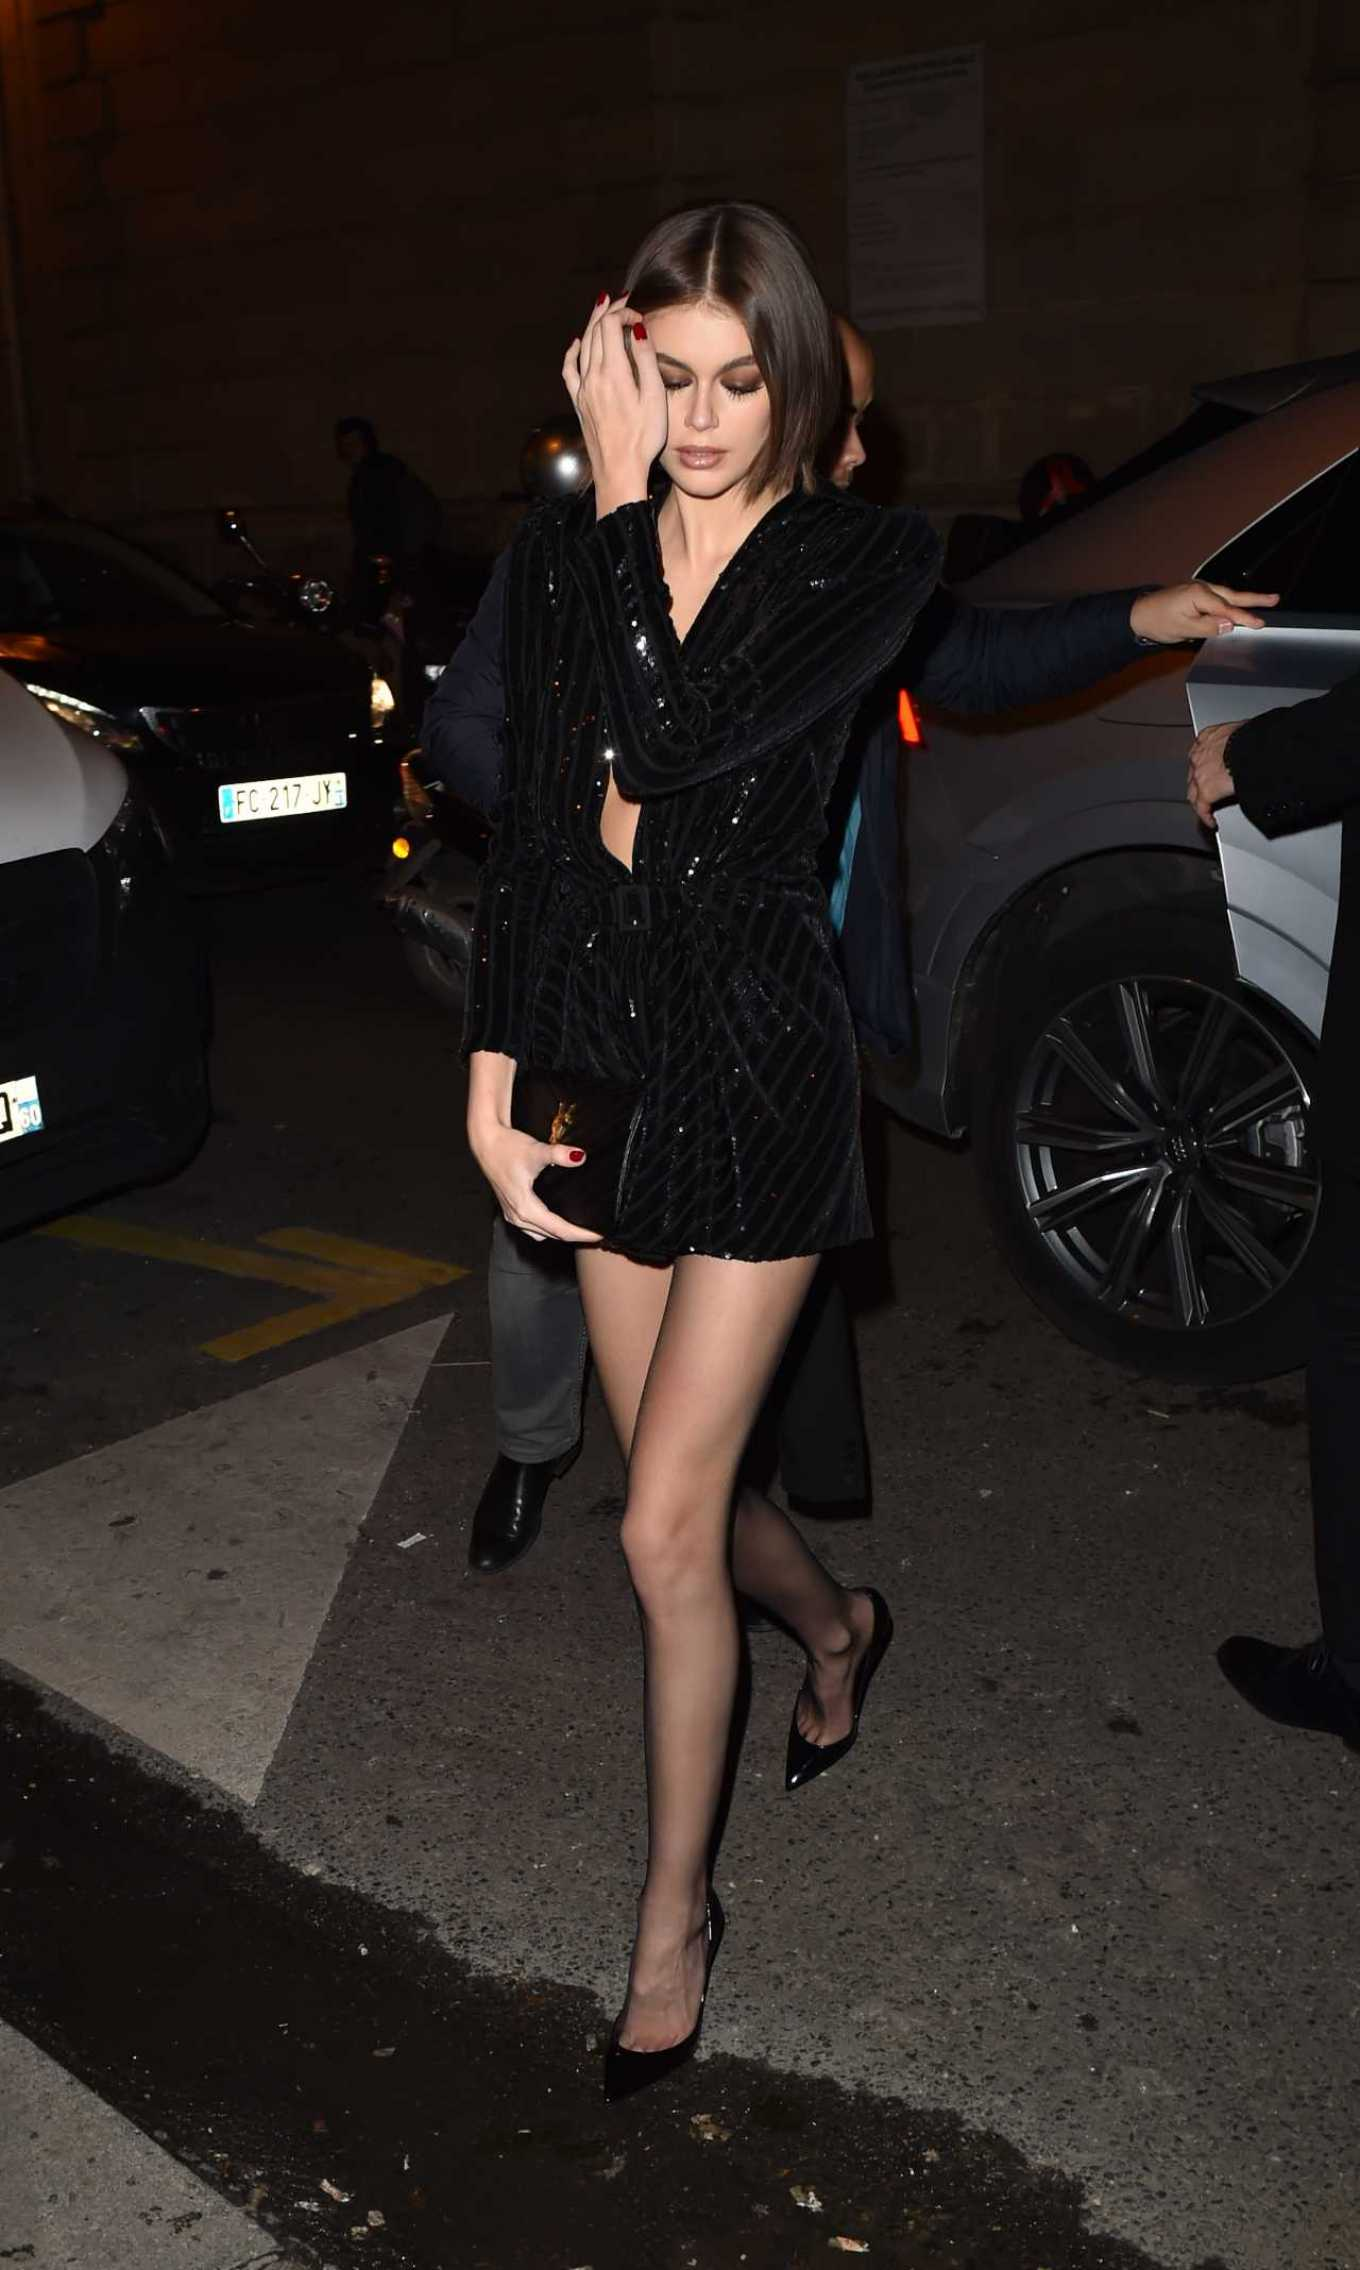 Kaia Gerber - Arrives at the YSL dinner party in Paris